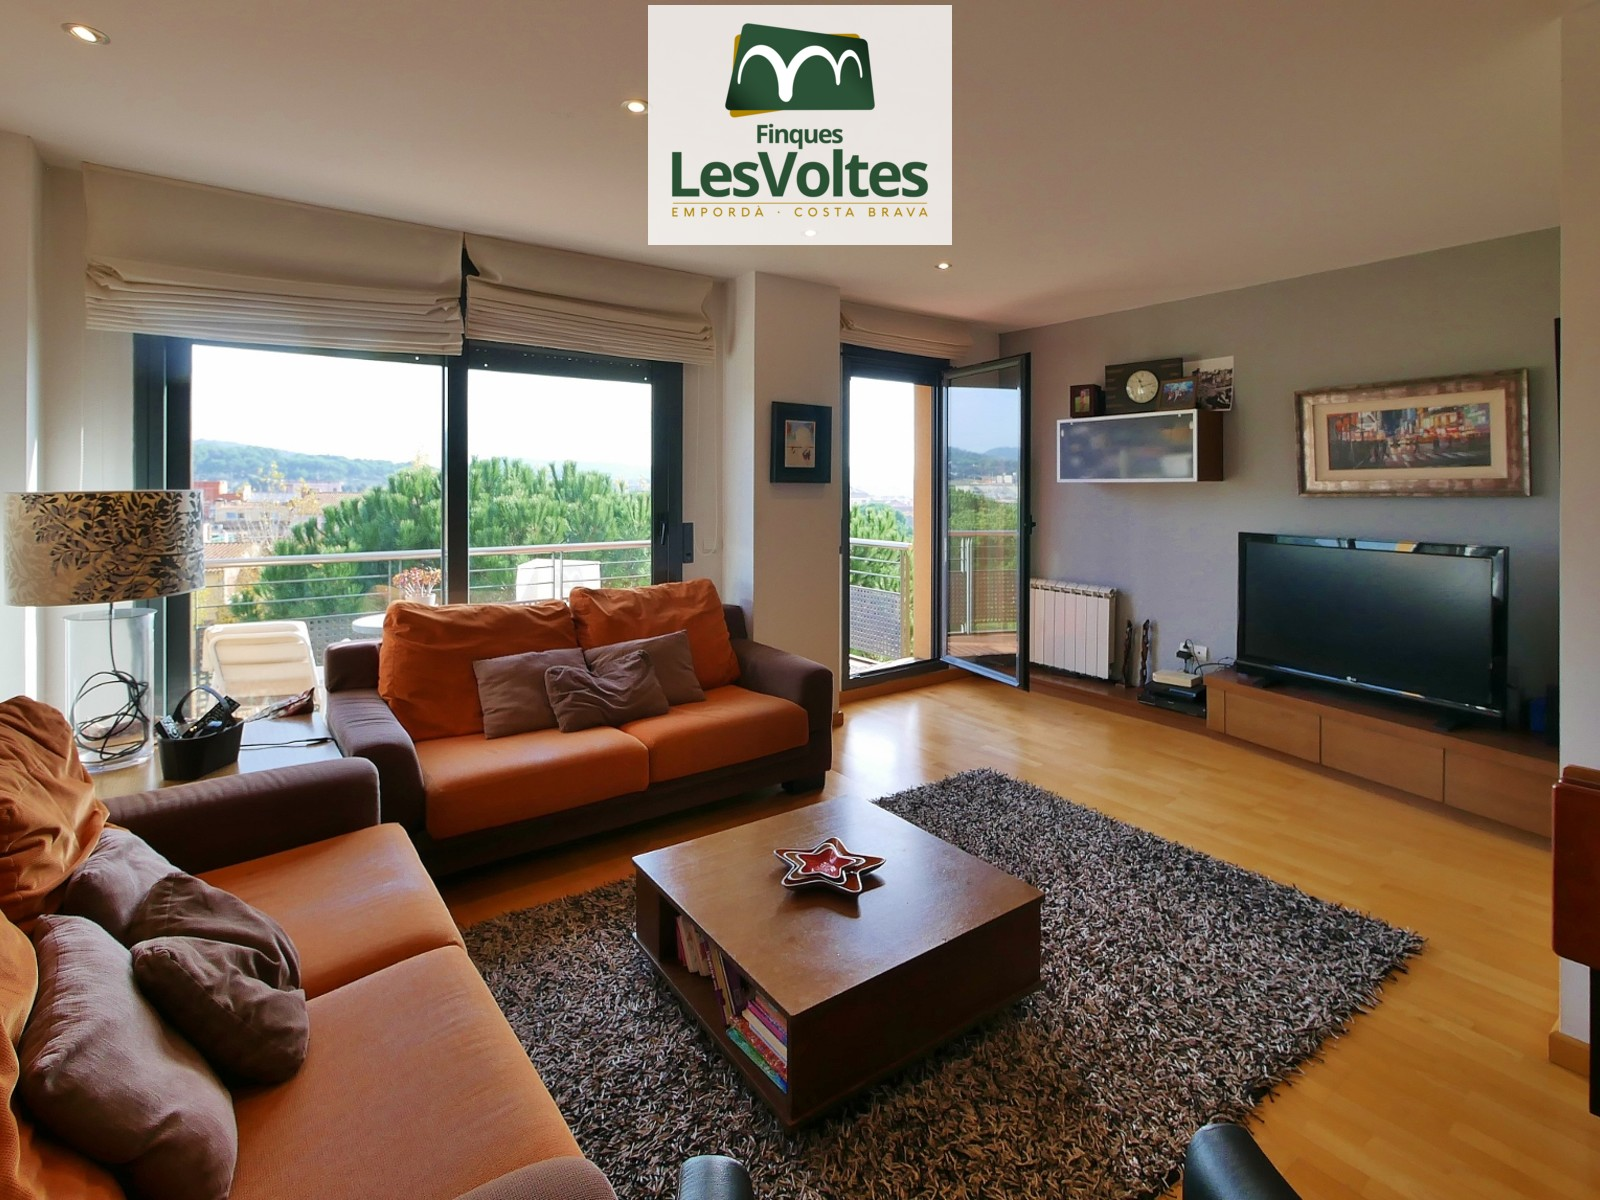 MAGNIFICENT FLAT OF 100M2 WITH VIEWS LARGE BALCONY-TERRACE AND 2 PARKING SPACES INCLUDED. IMPECCABLE!